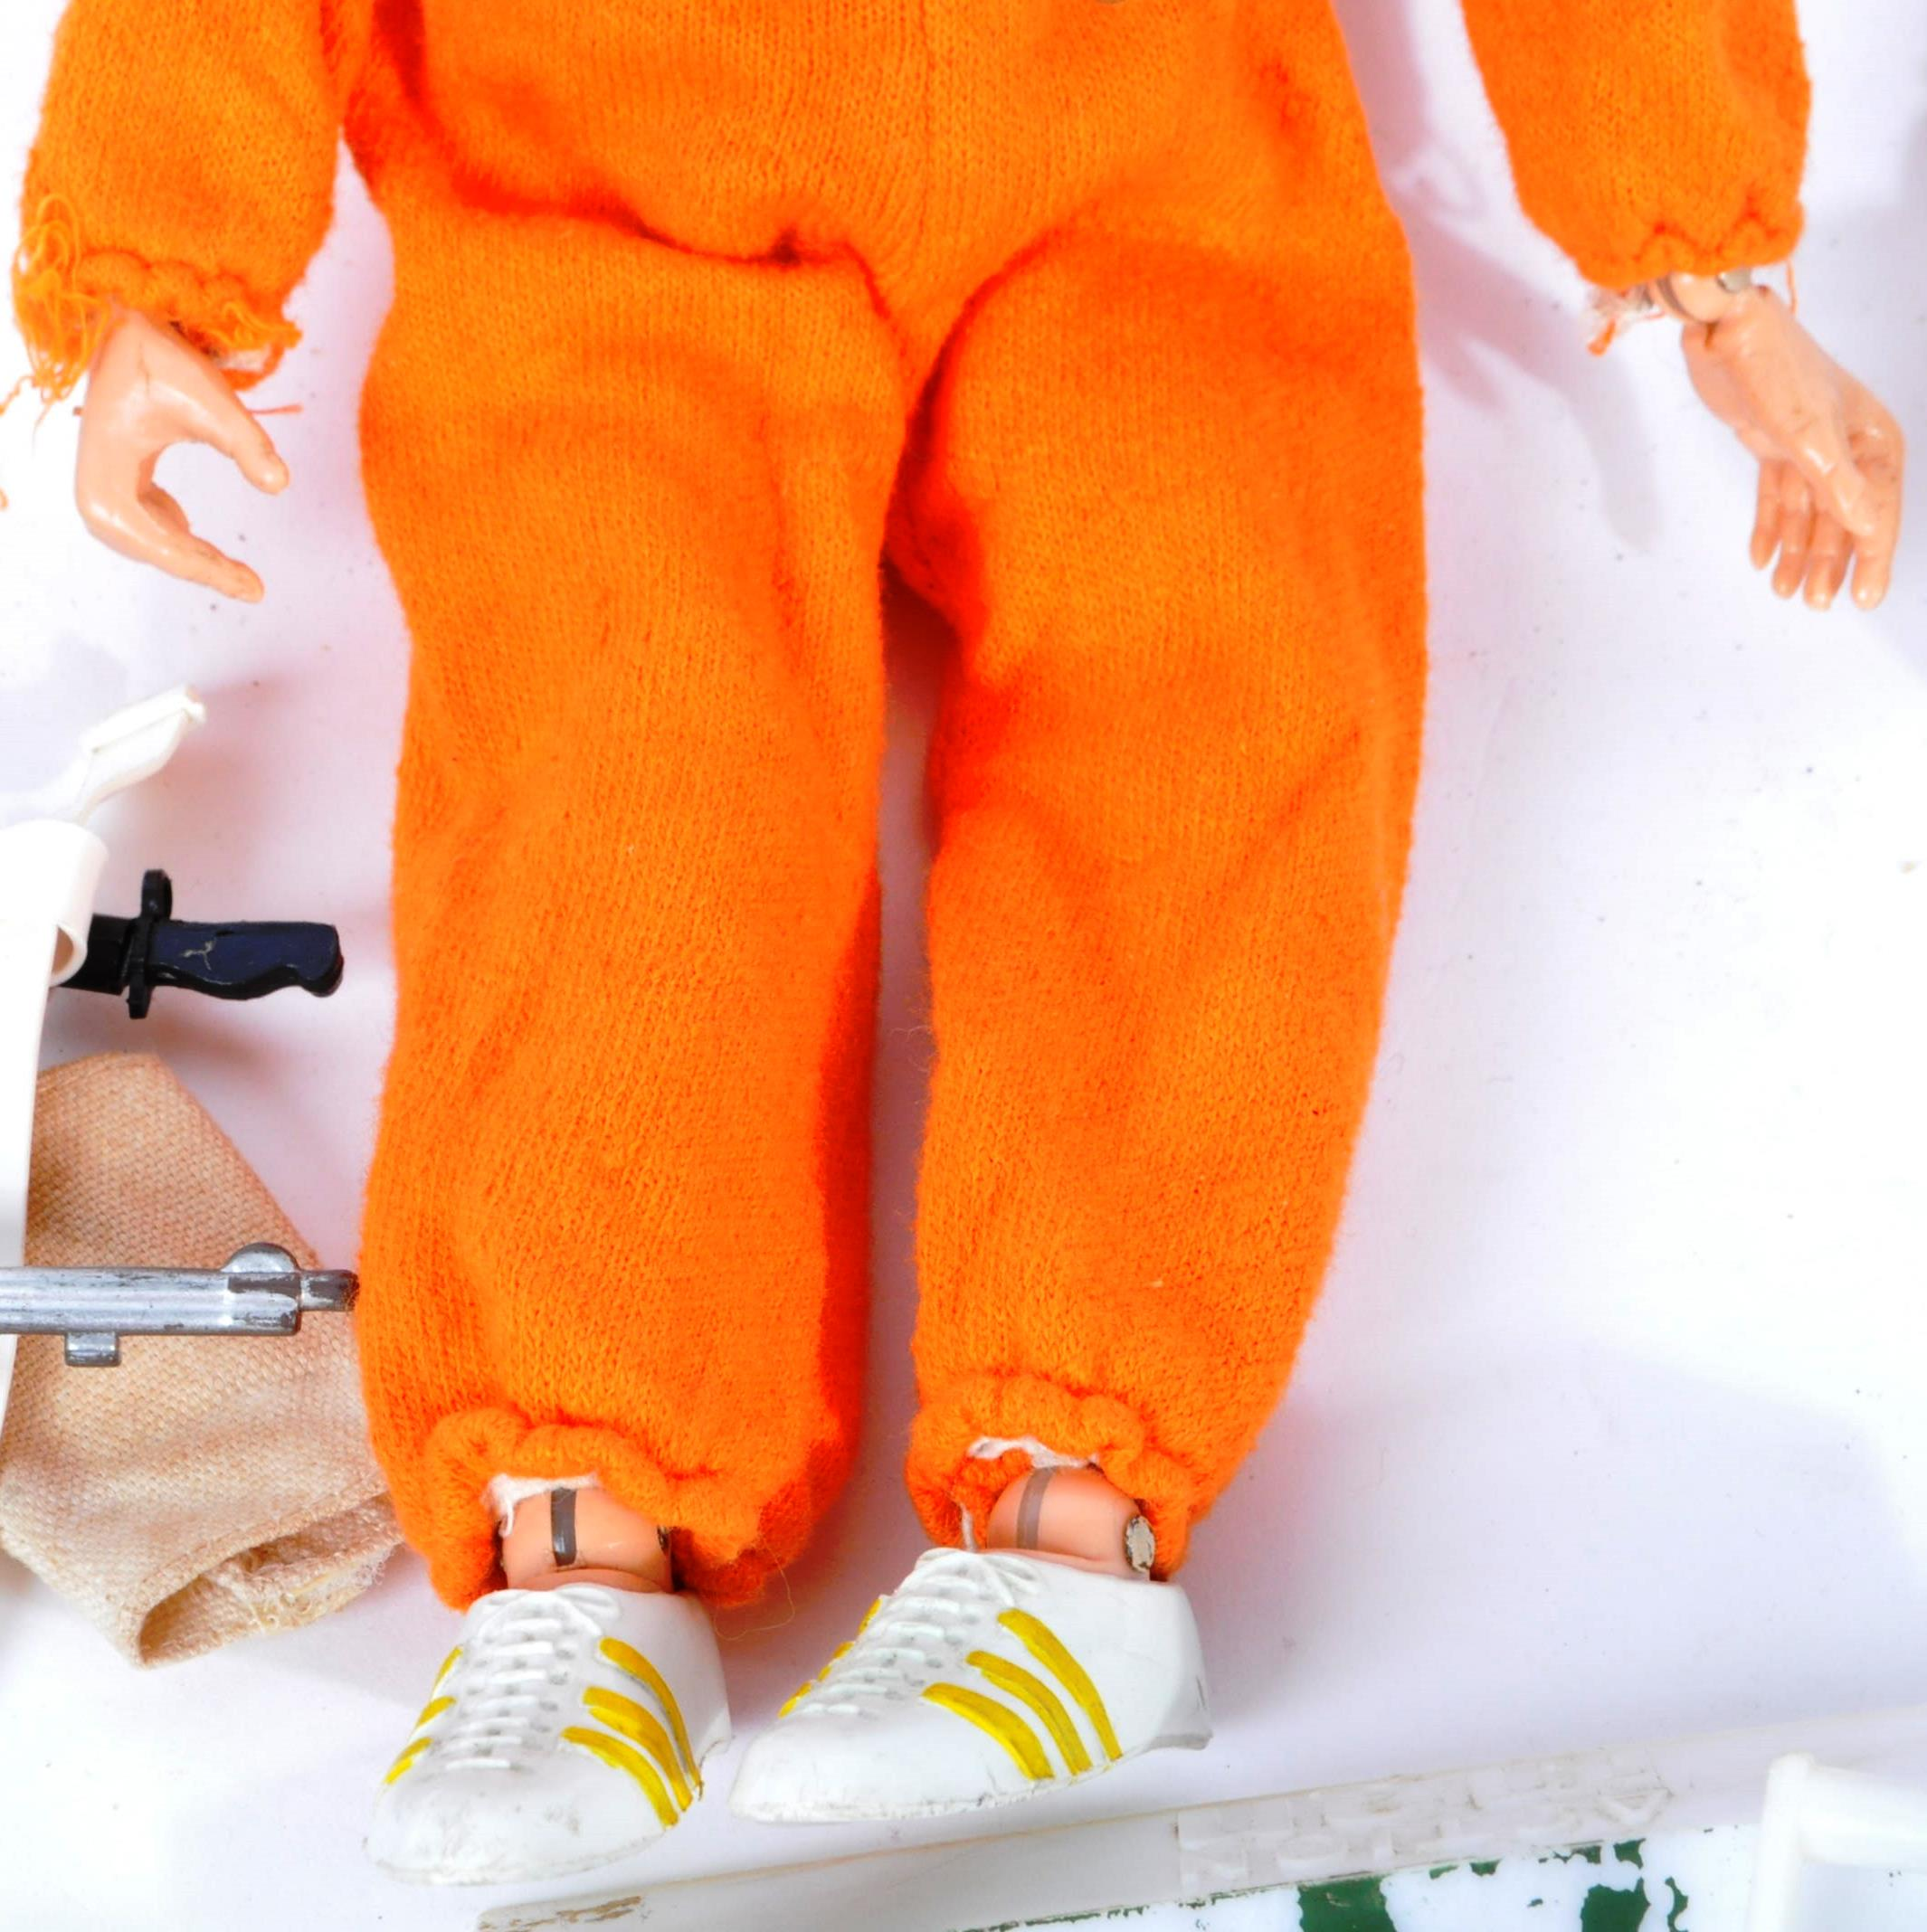 ACTION MAN - COLLECTION OF VINTAGE PALITOY UNIFORMS & FIGURE - Image 3 of 9